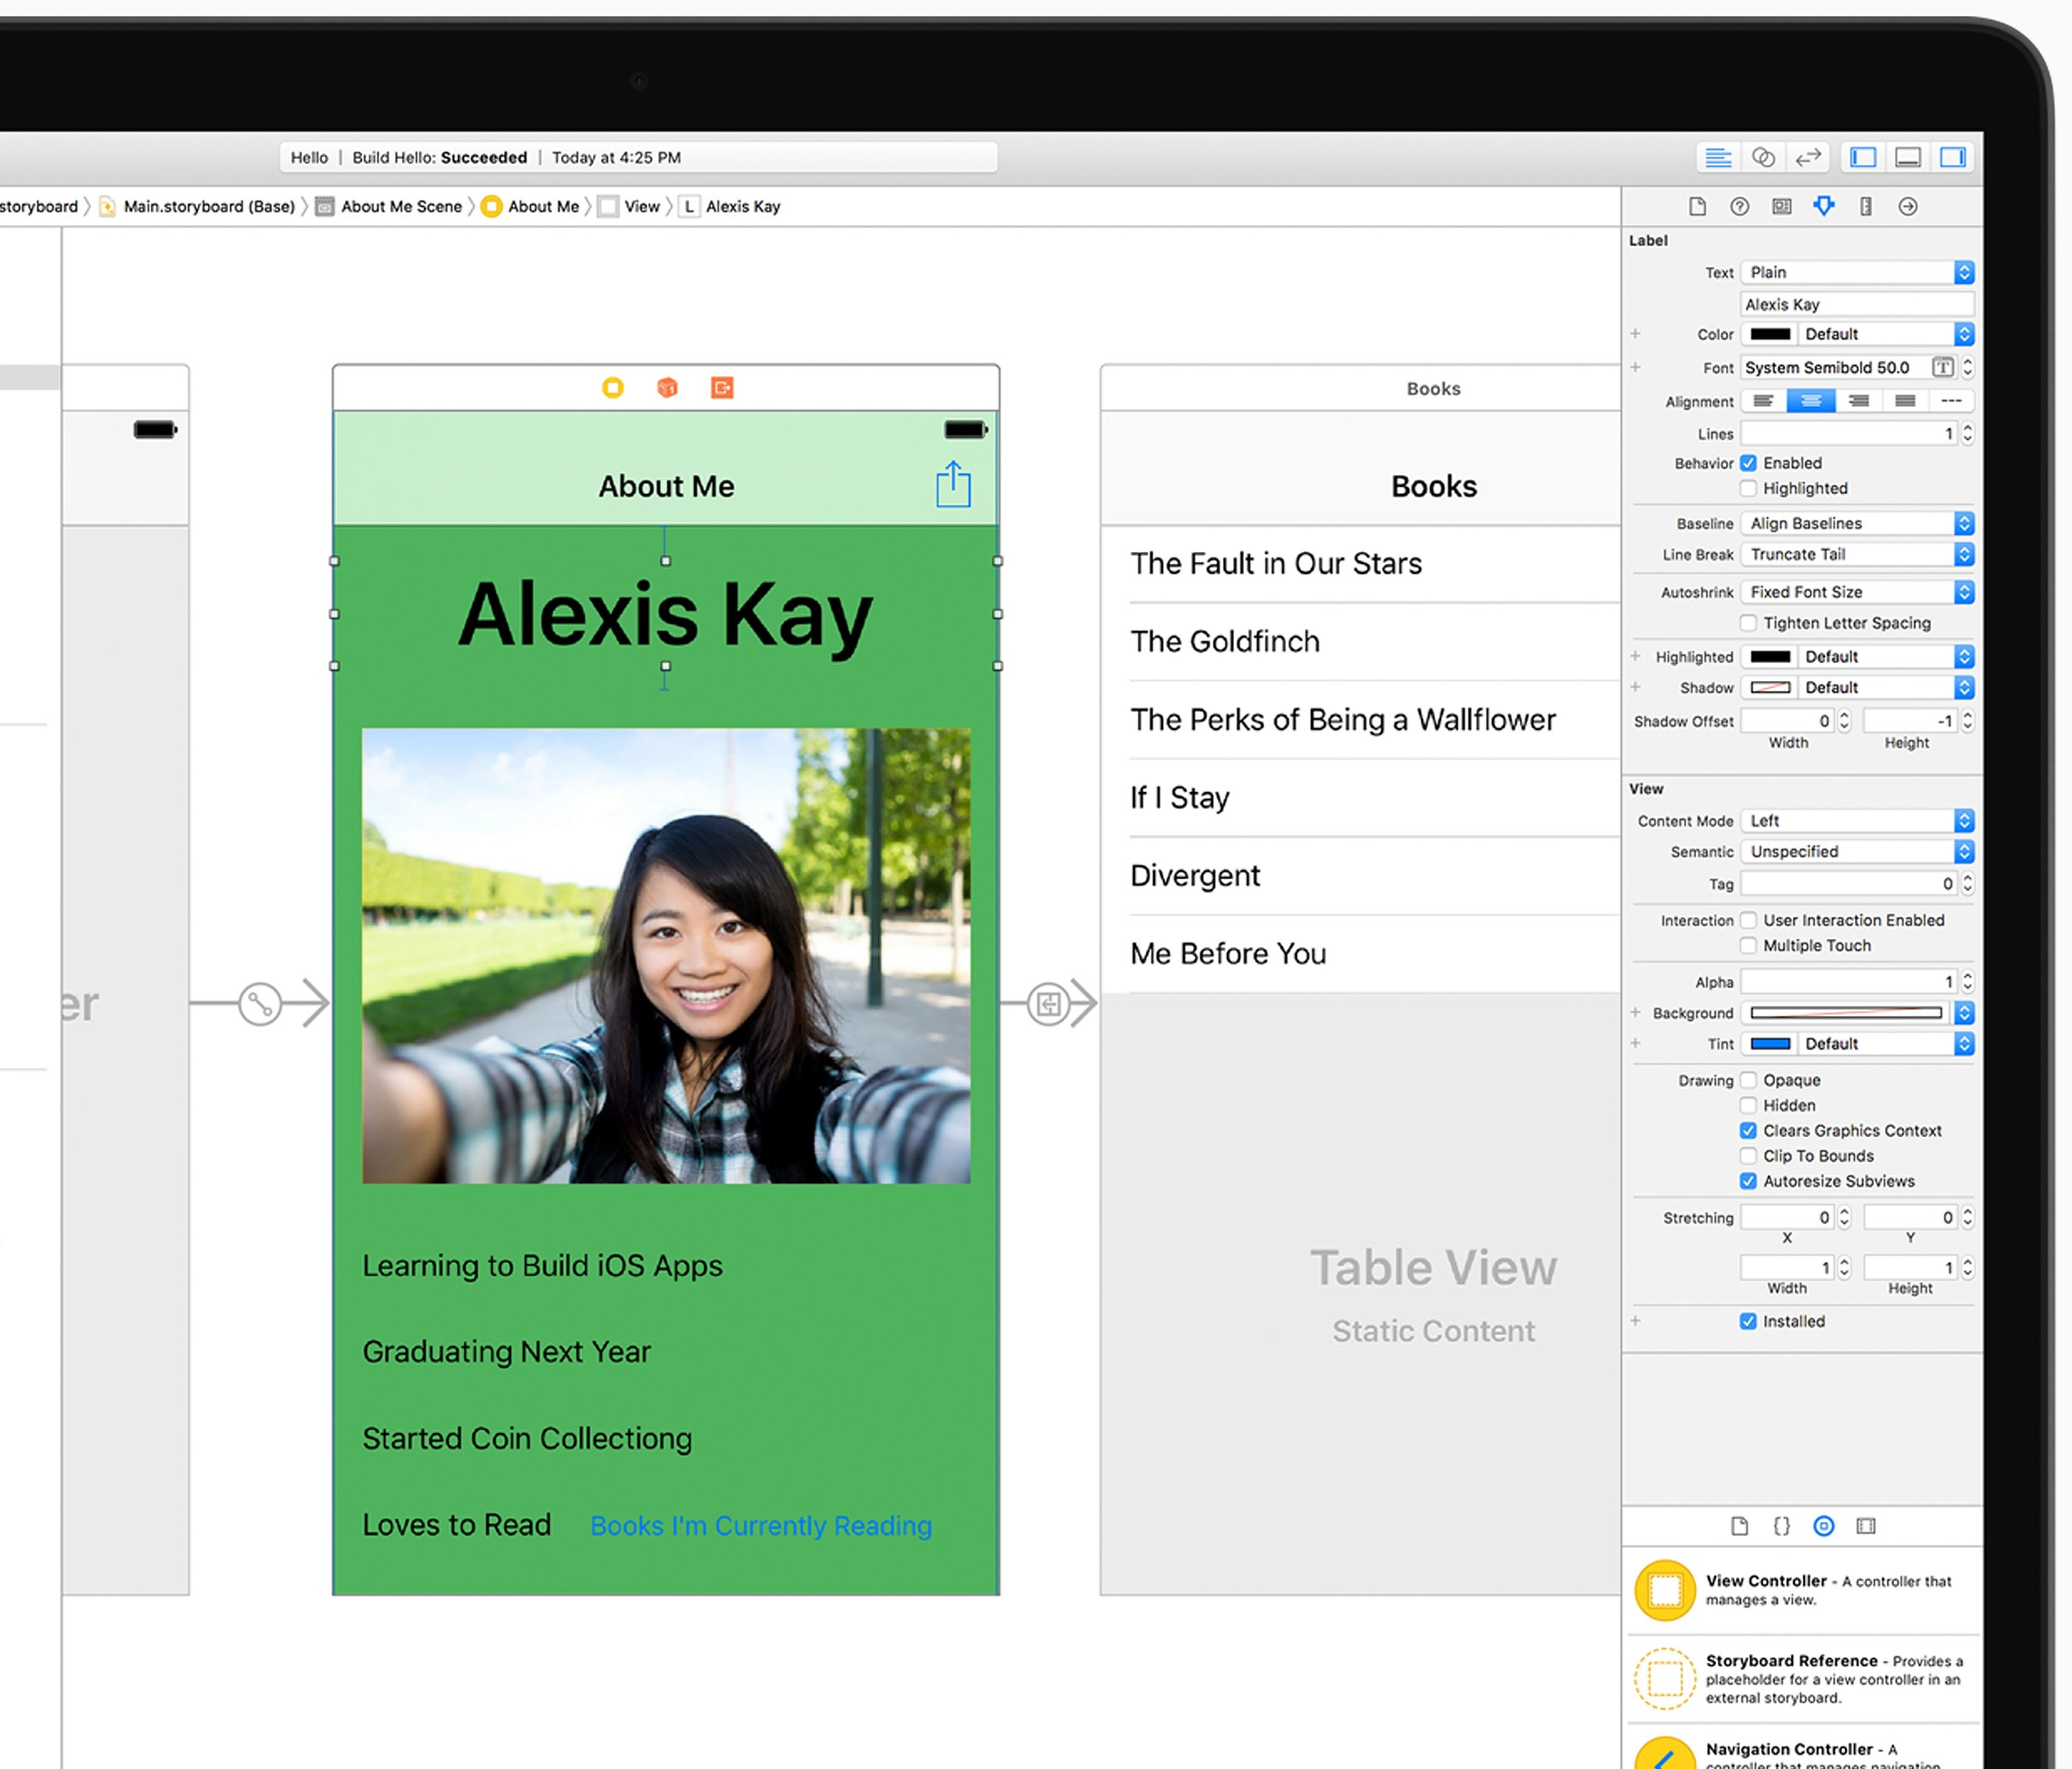 Apple Introduces Swift Curriculum for High School and Community College Students